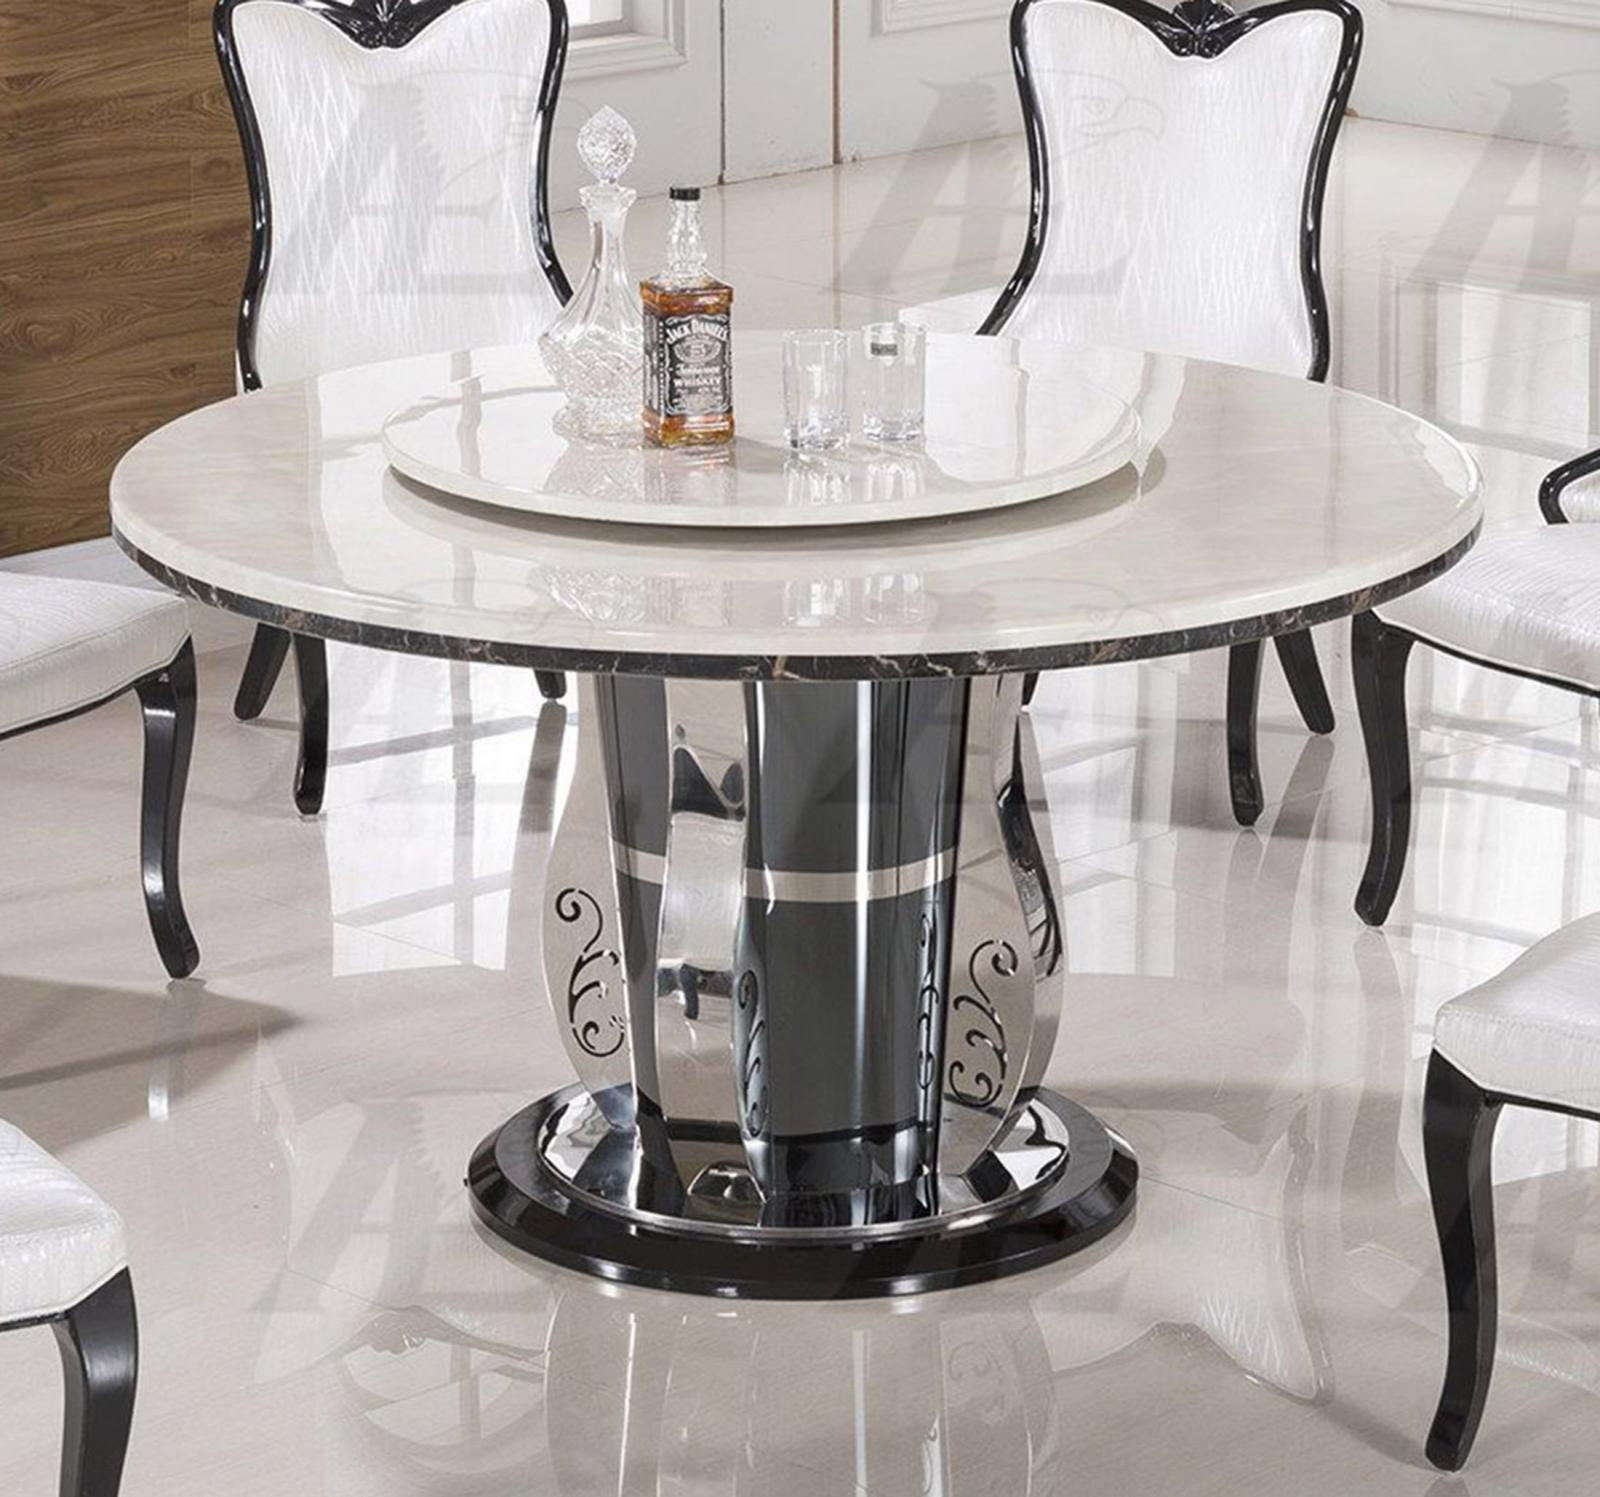 White Marble Top Round Dining Set Shop for Affordable